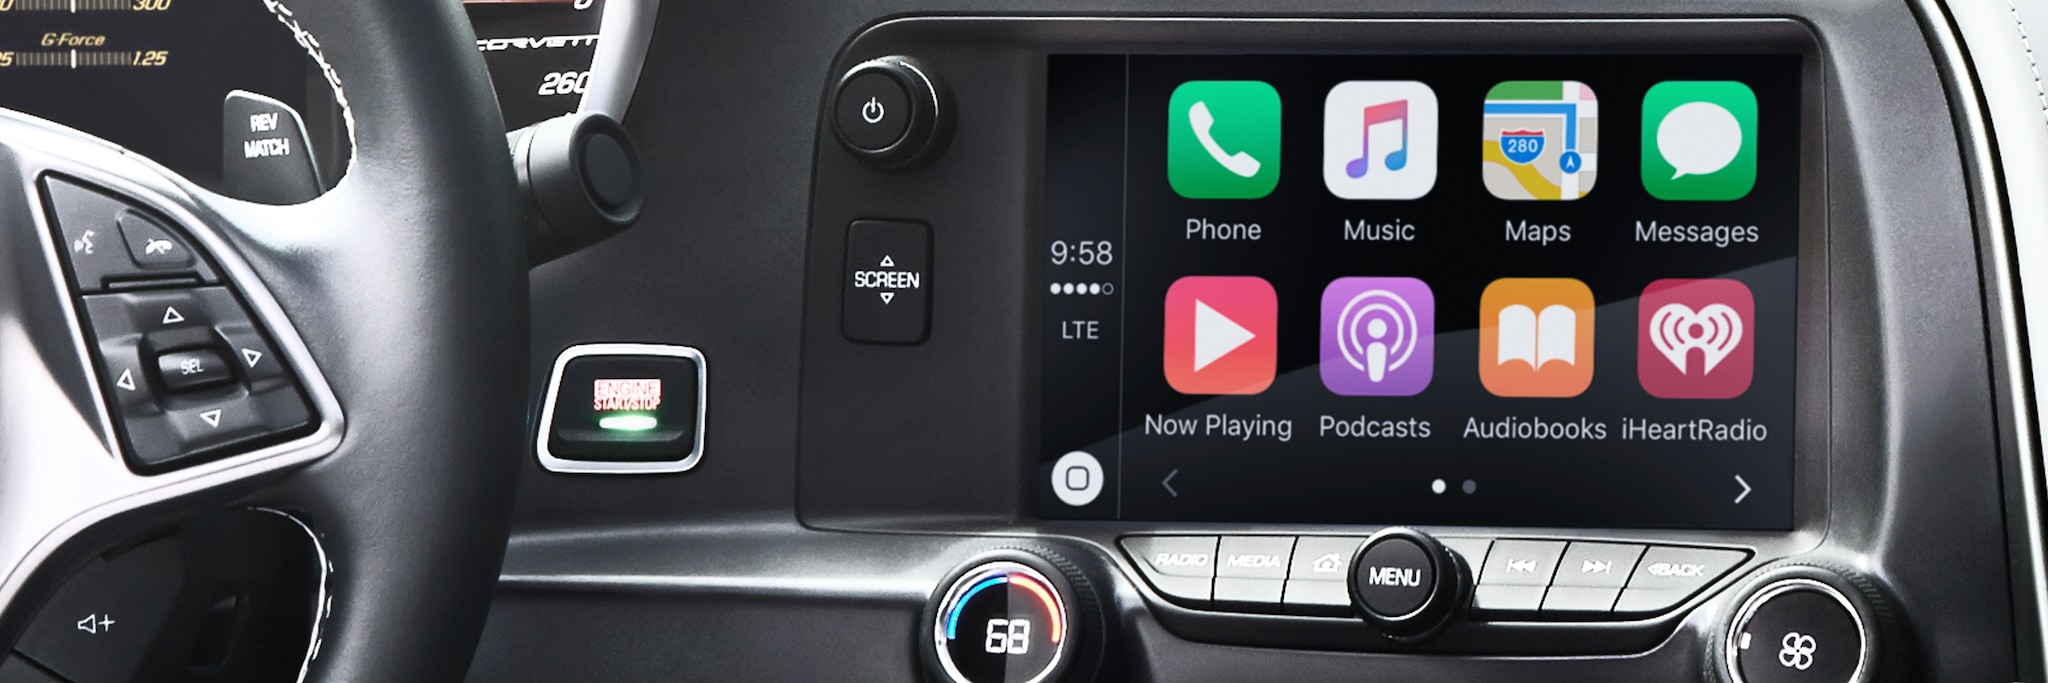 Auto deportivo Corvette Stingray 2017: Apple CarPlay